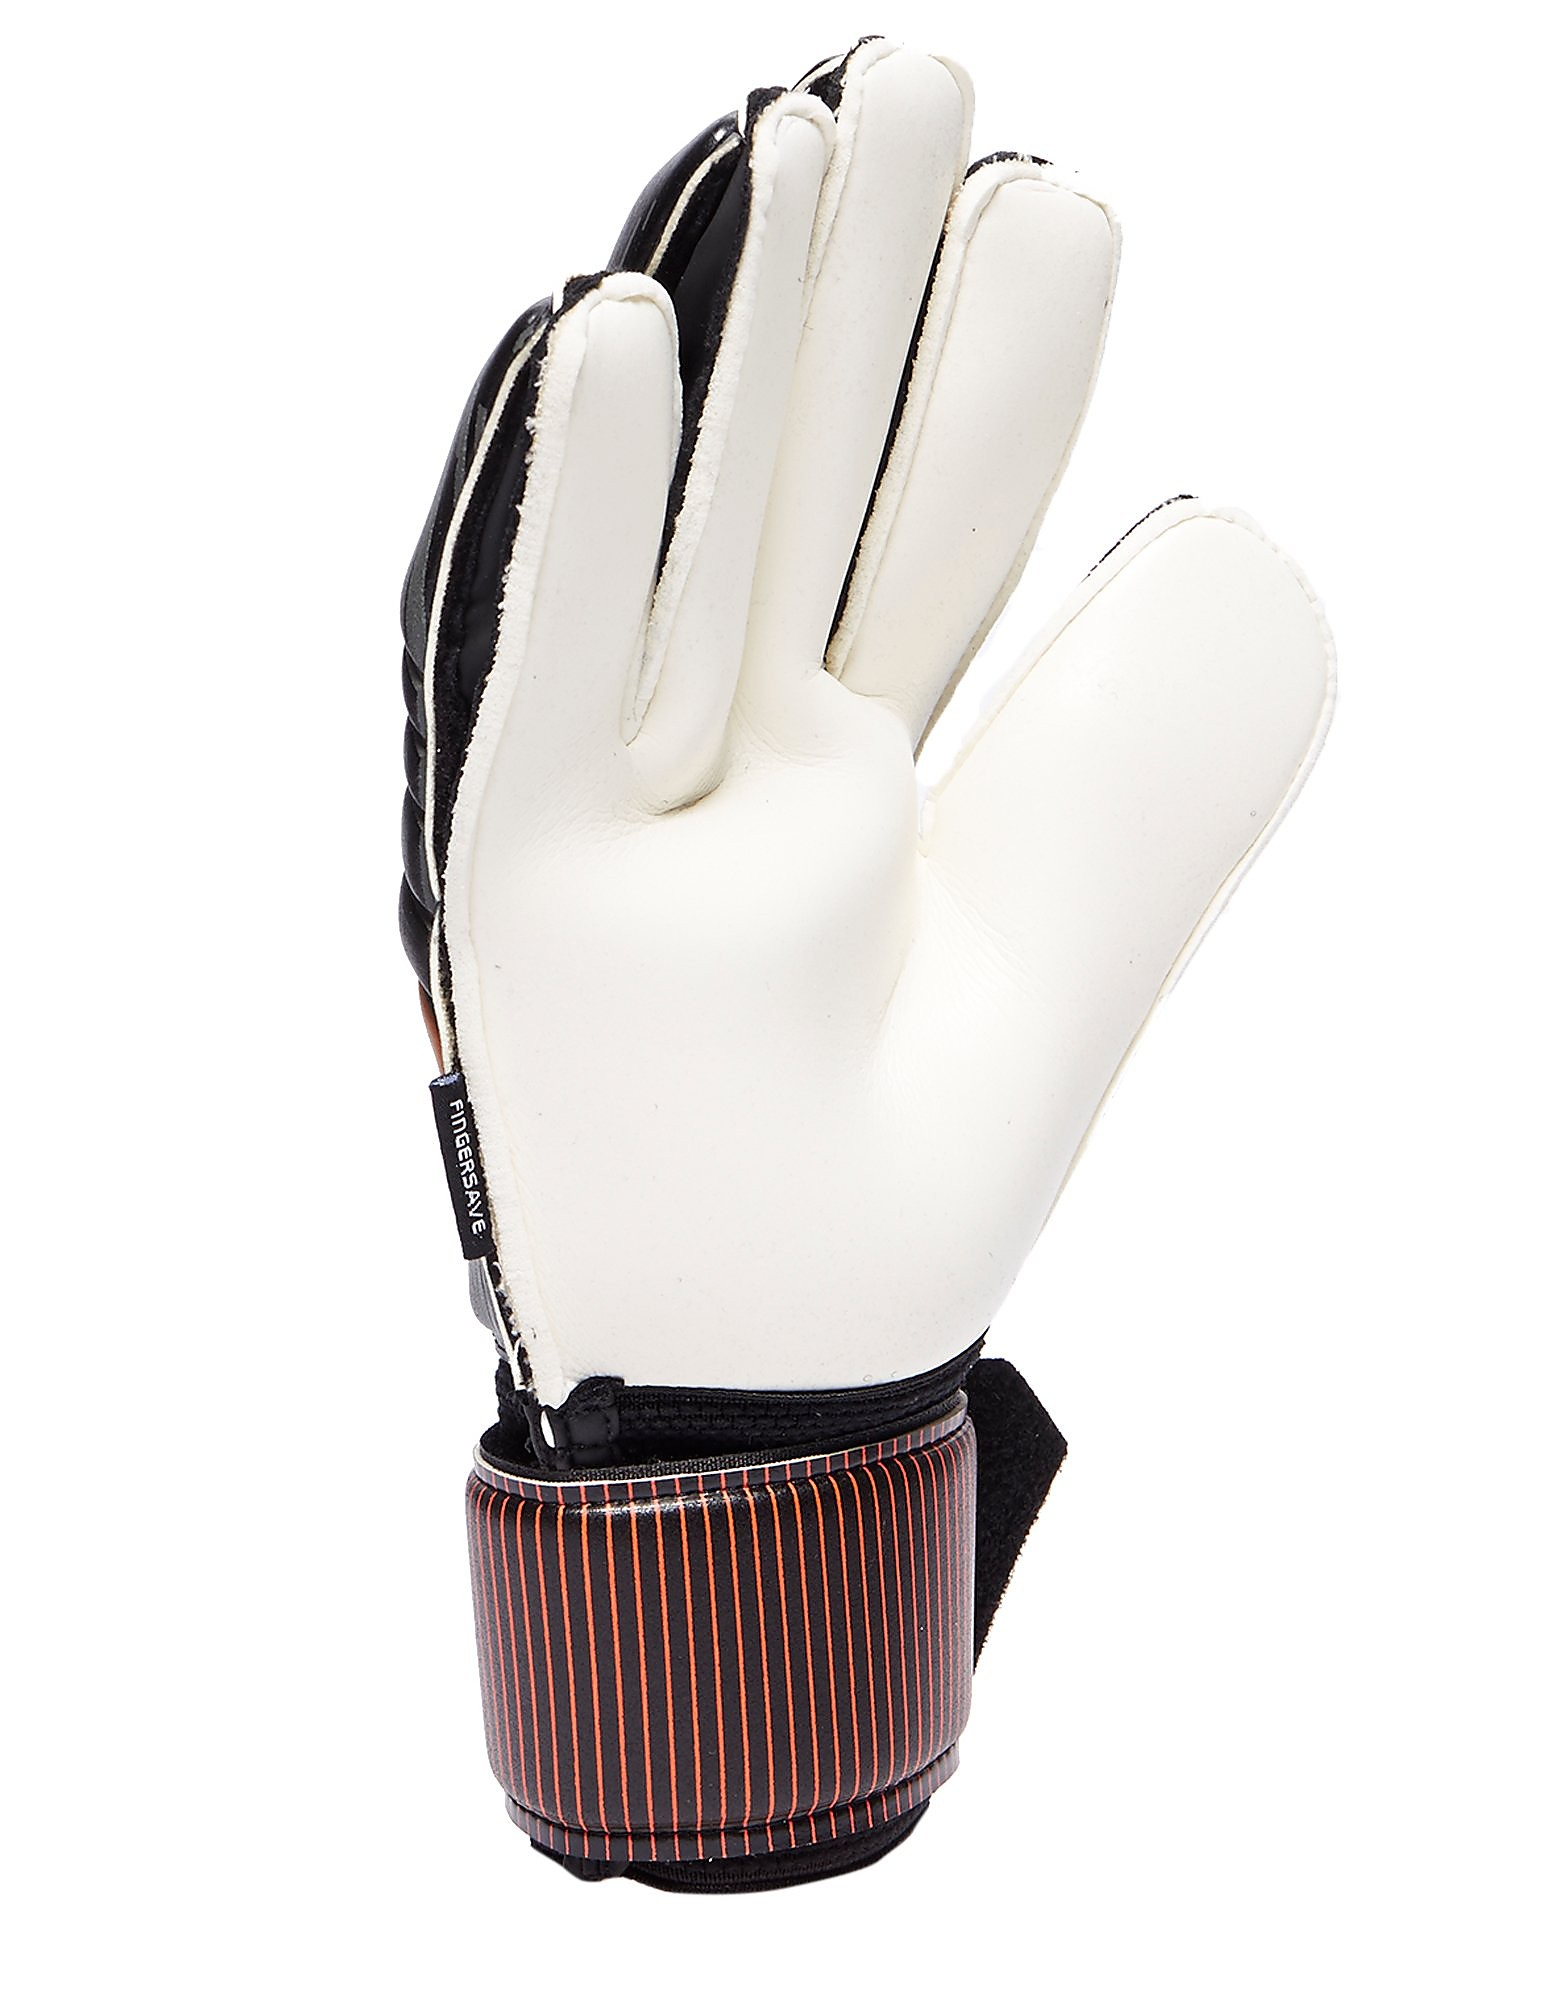 adidas Predator 18 Fingersave Replique Gloves